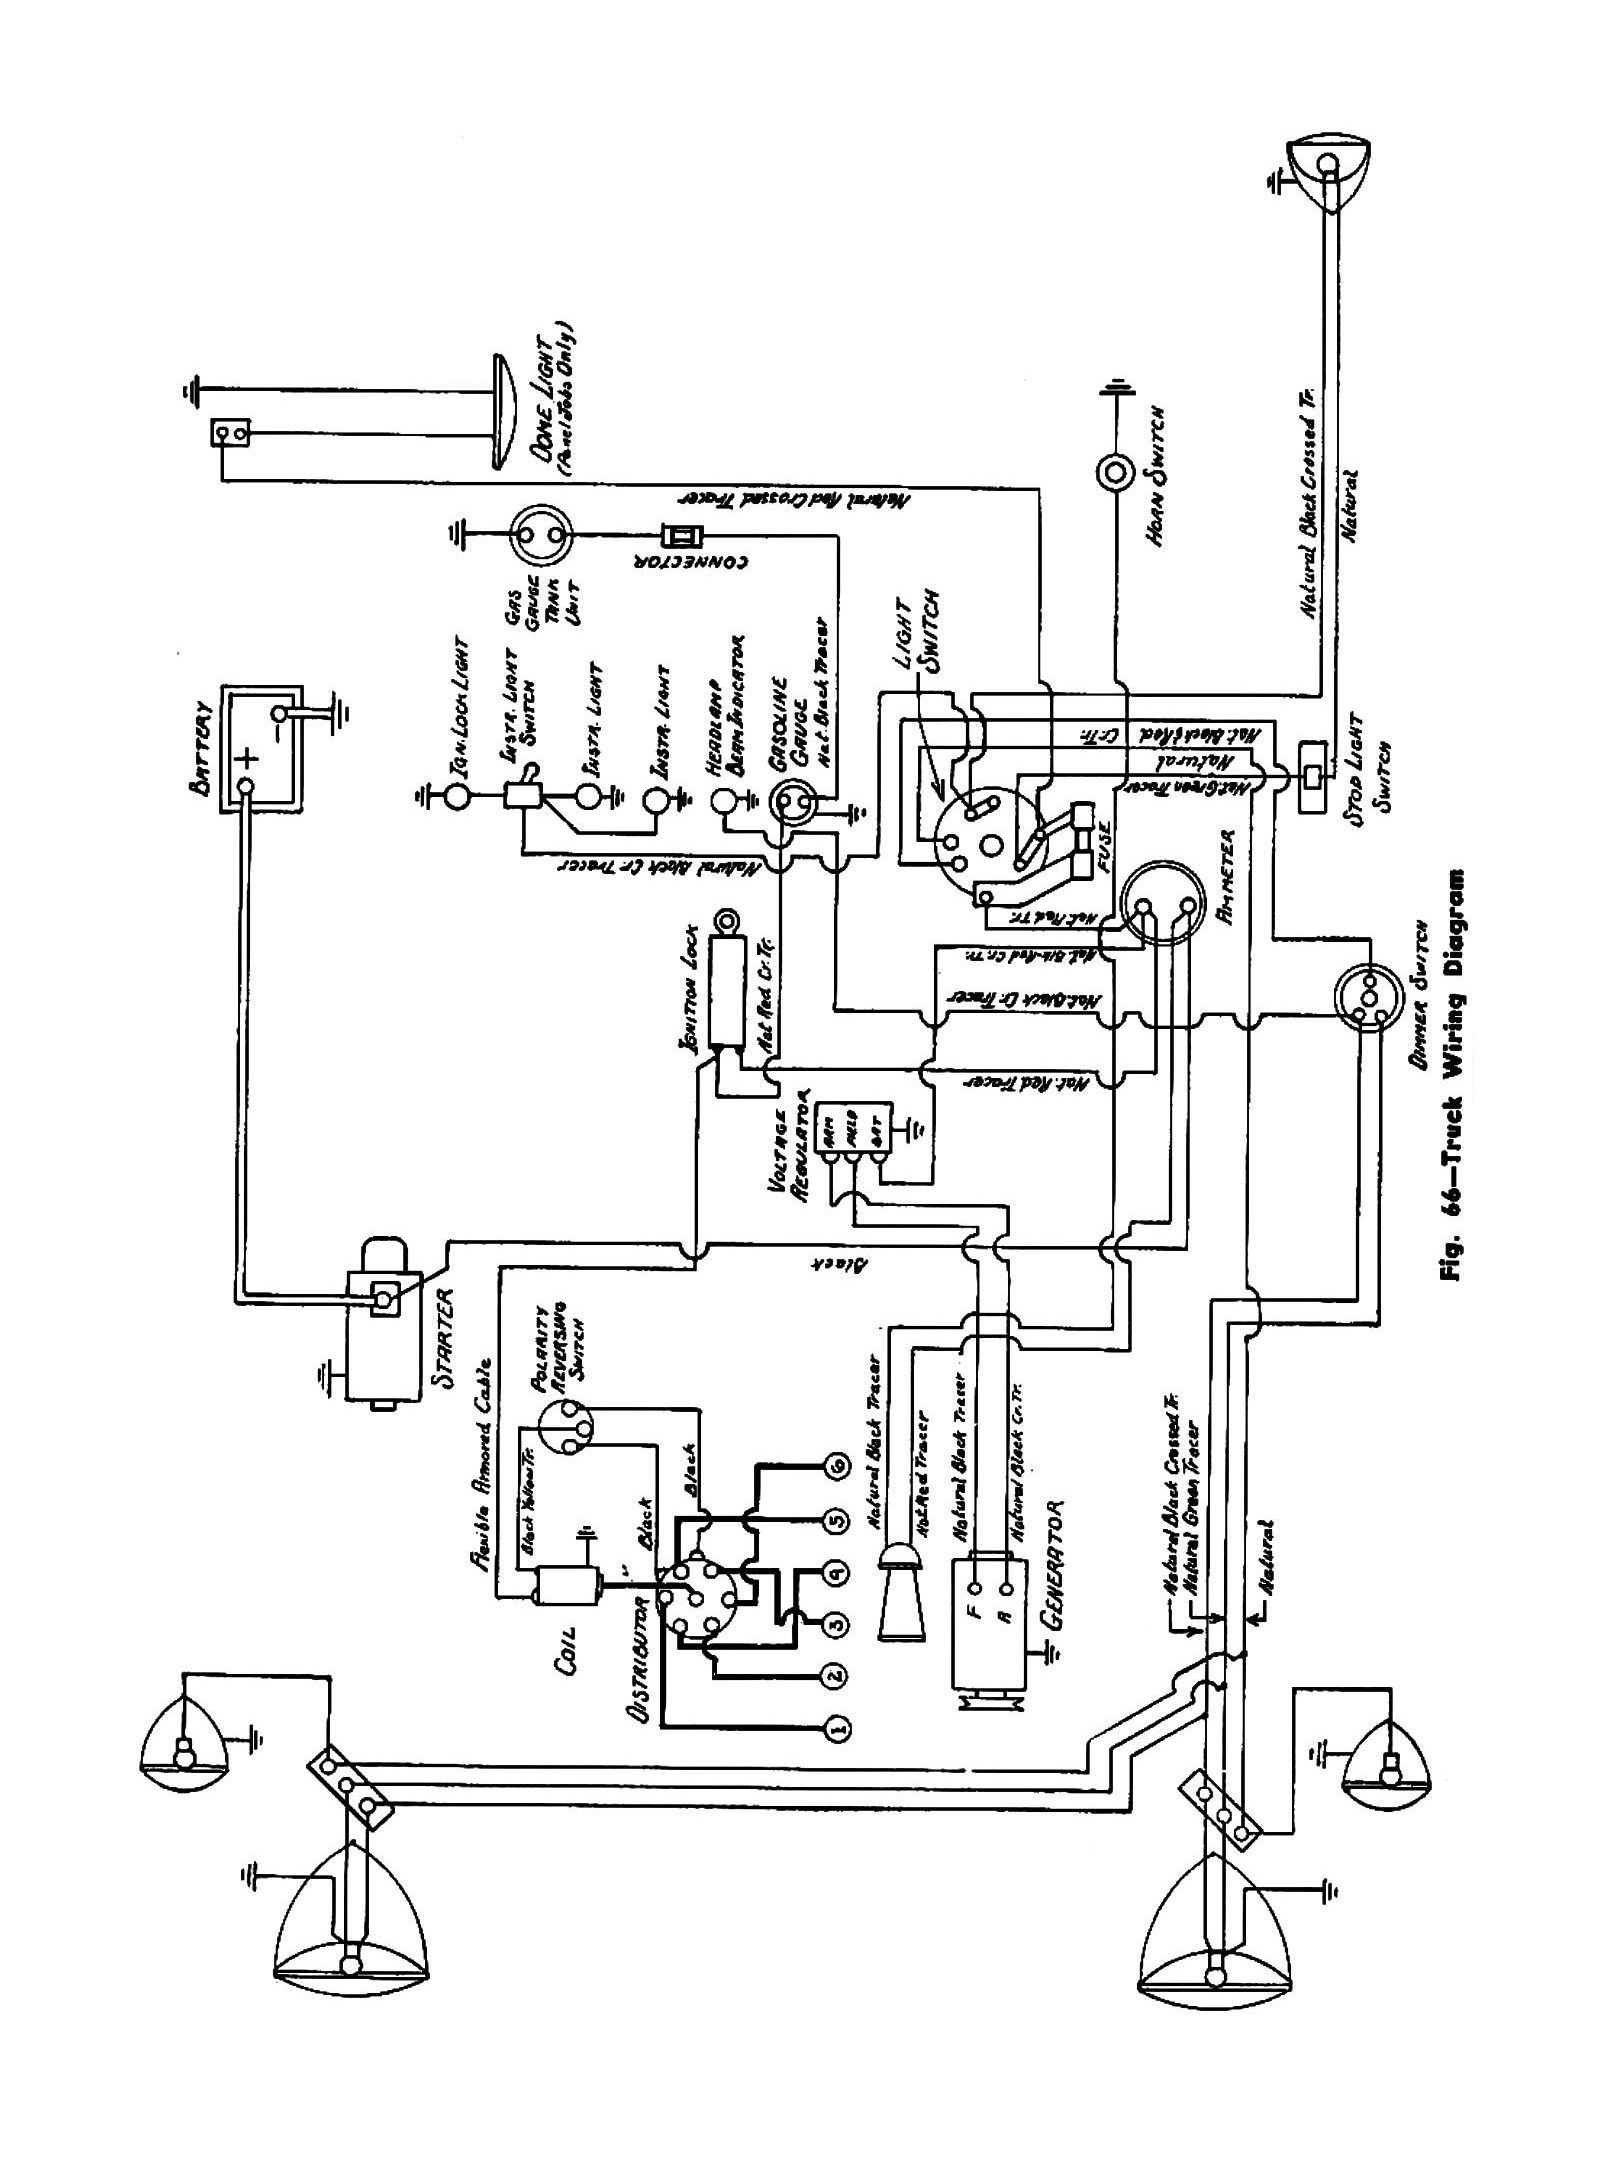 hight resolution of 1954 dodge truck wiring harness wiring diagram paper 1953 truck wiring 1954 1954 car wiring 1954 truck wiring